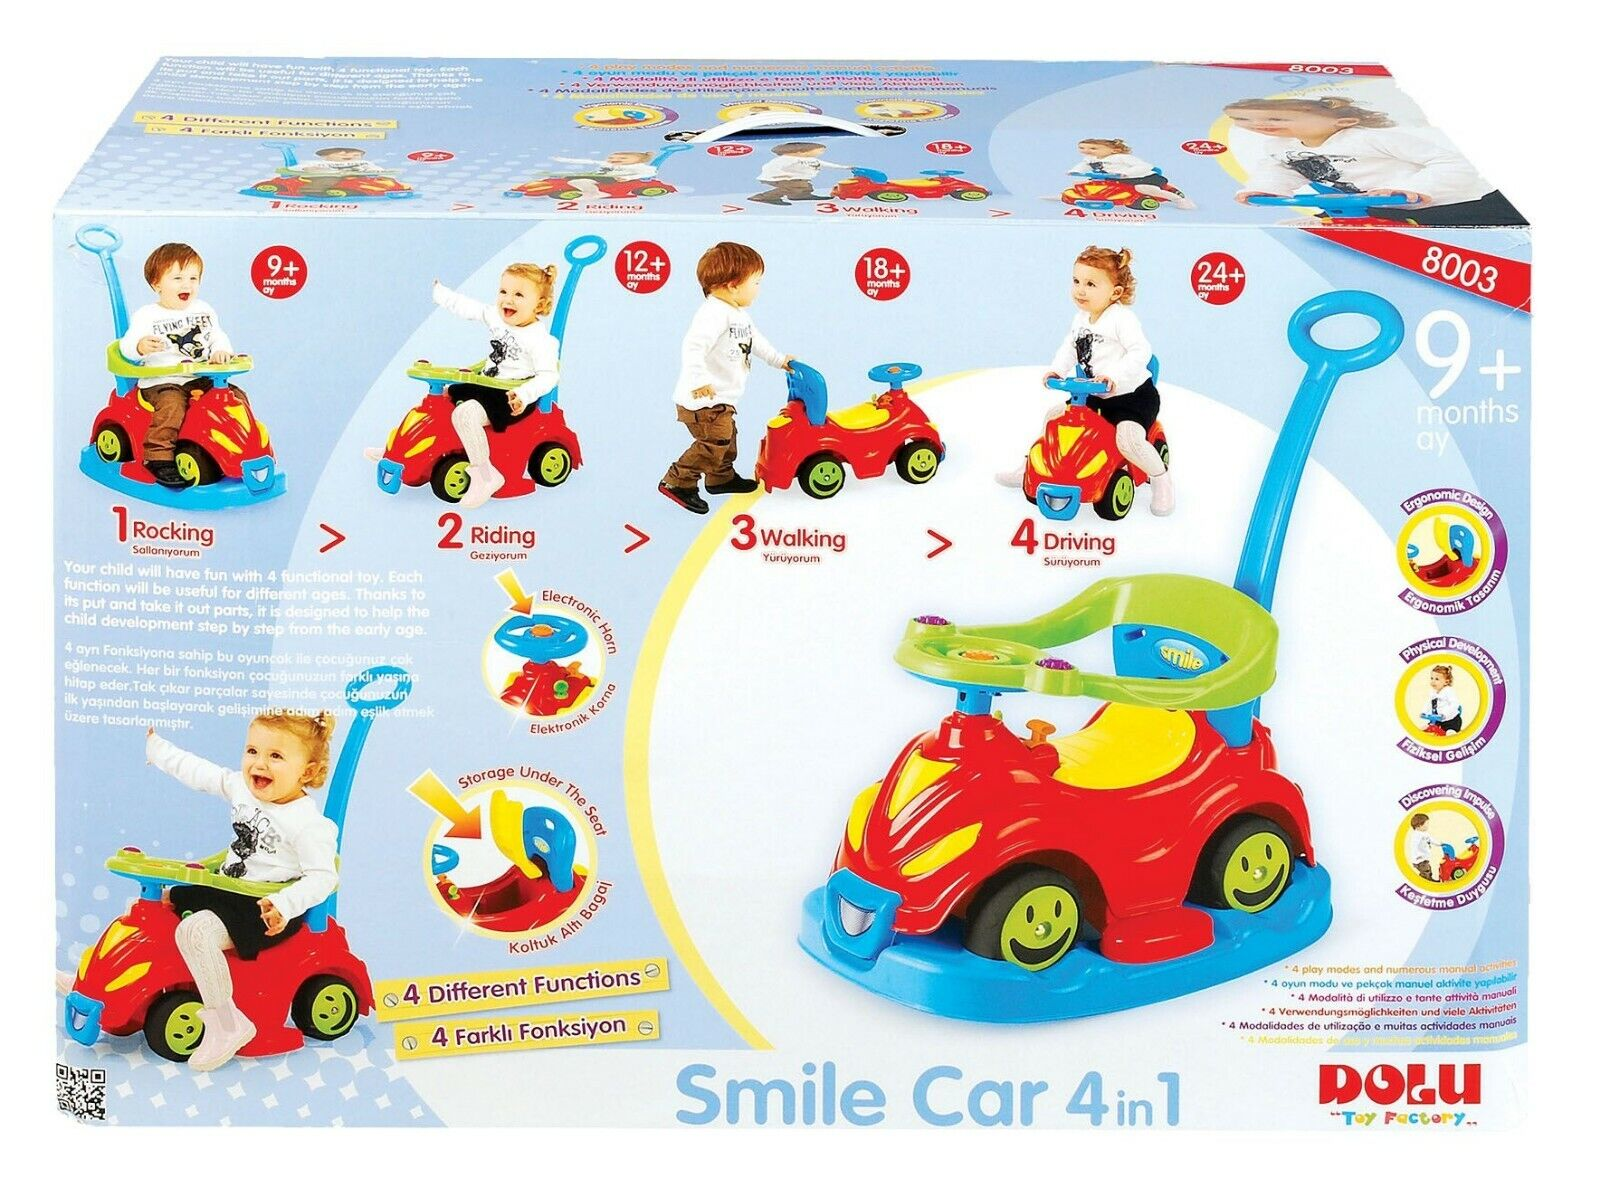 Dolu 4 In 1 Smile Car [Ages 12+ Months] BRAND NEW